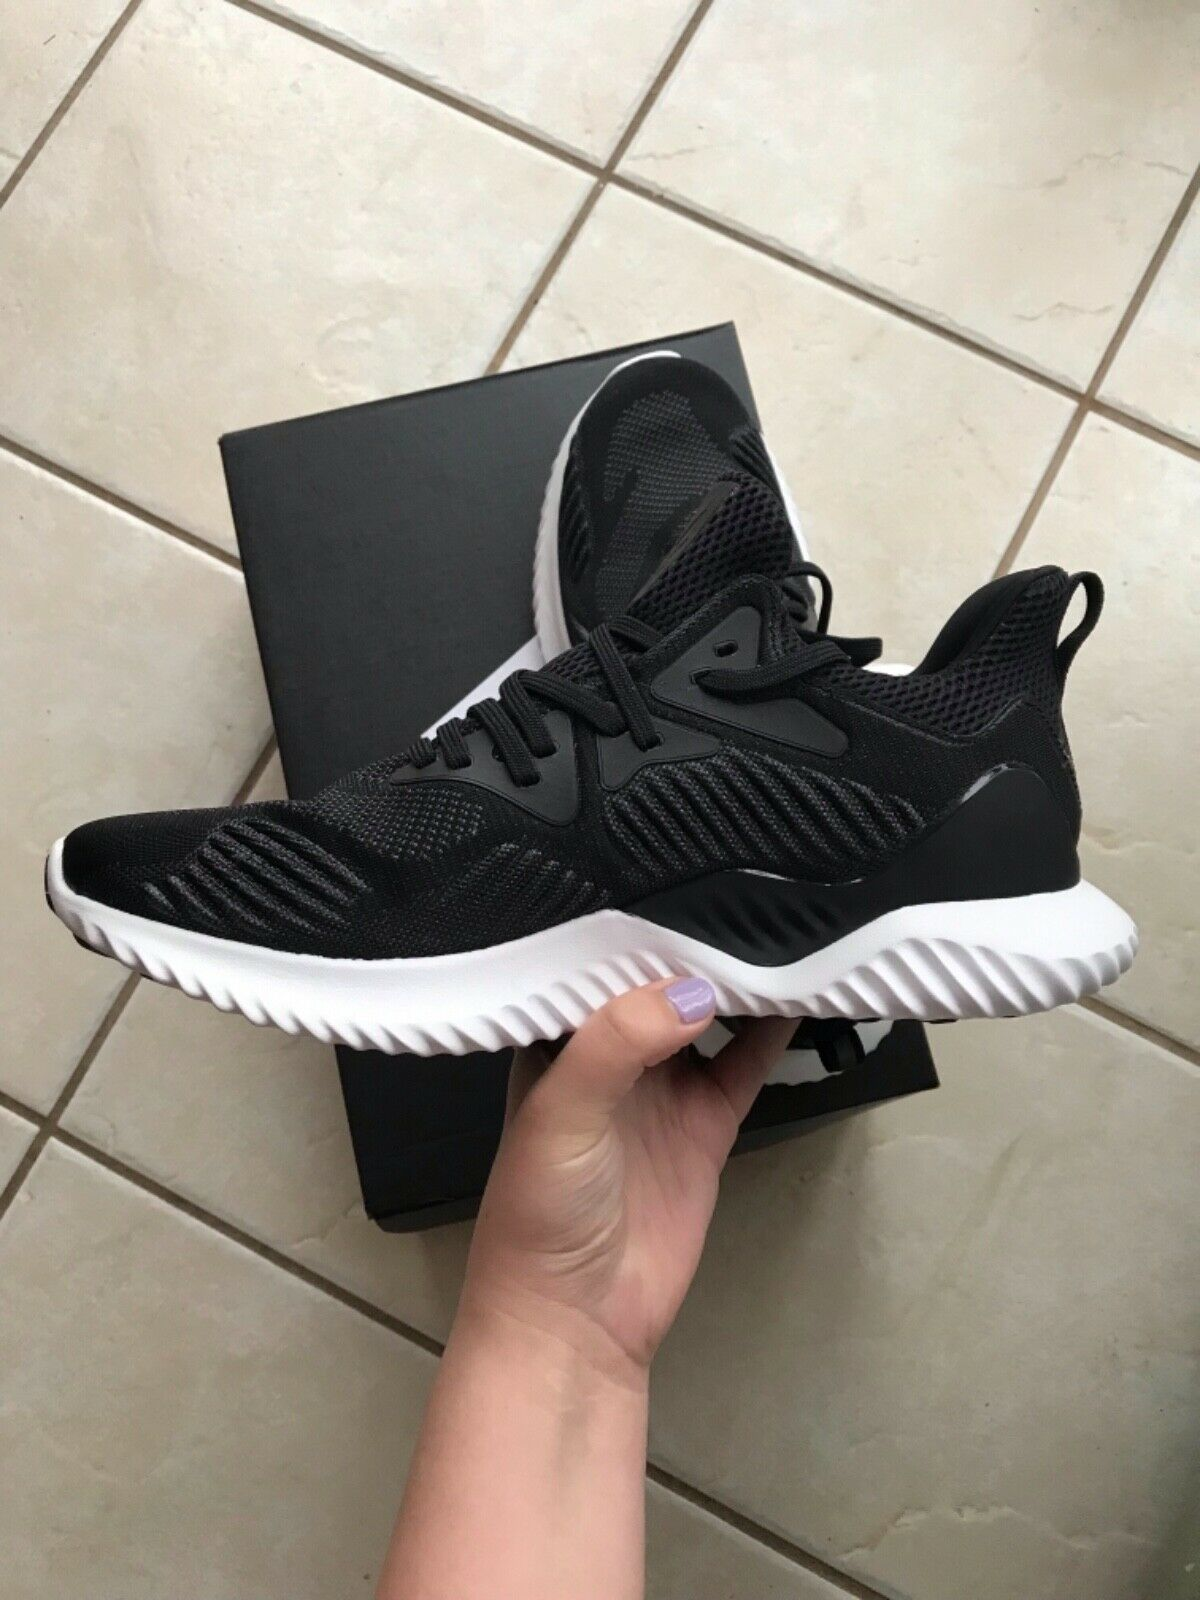 Adidas alphabounce, black, size 10, men's, running shoes, new with box